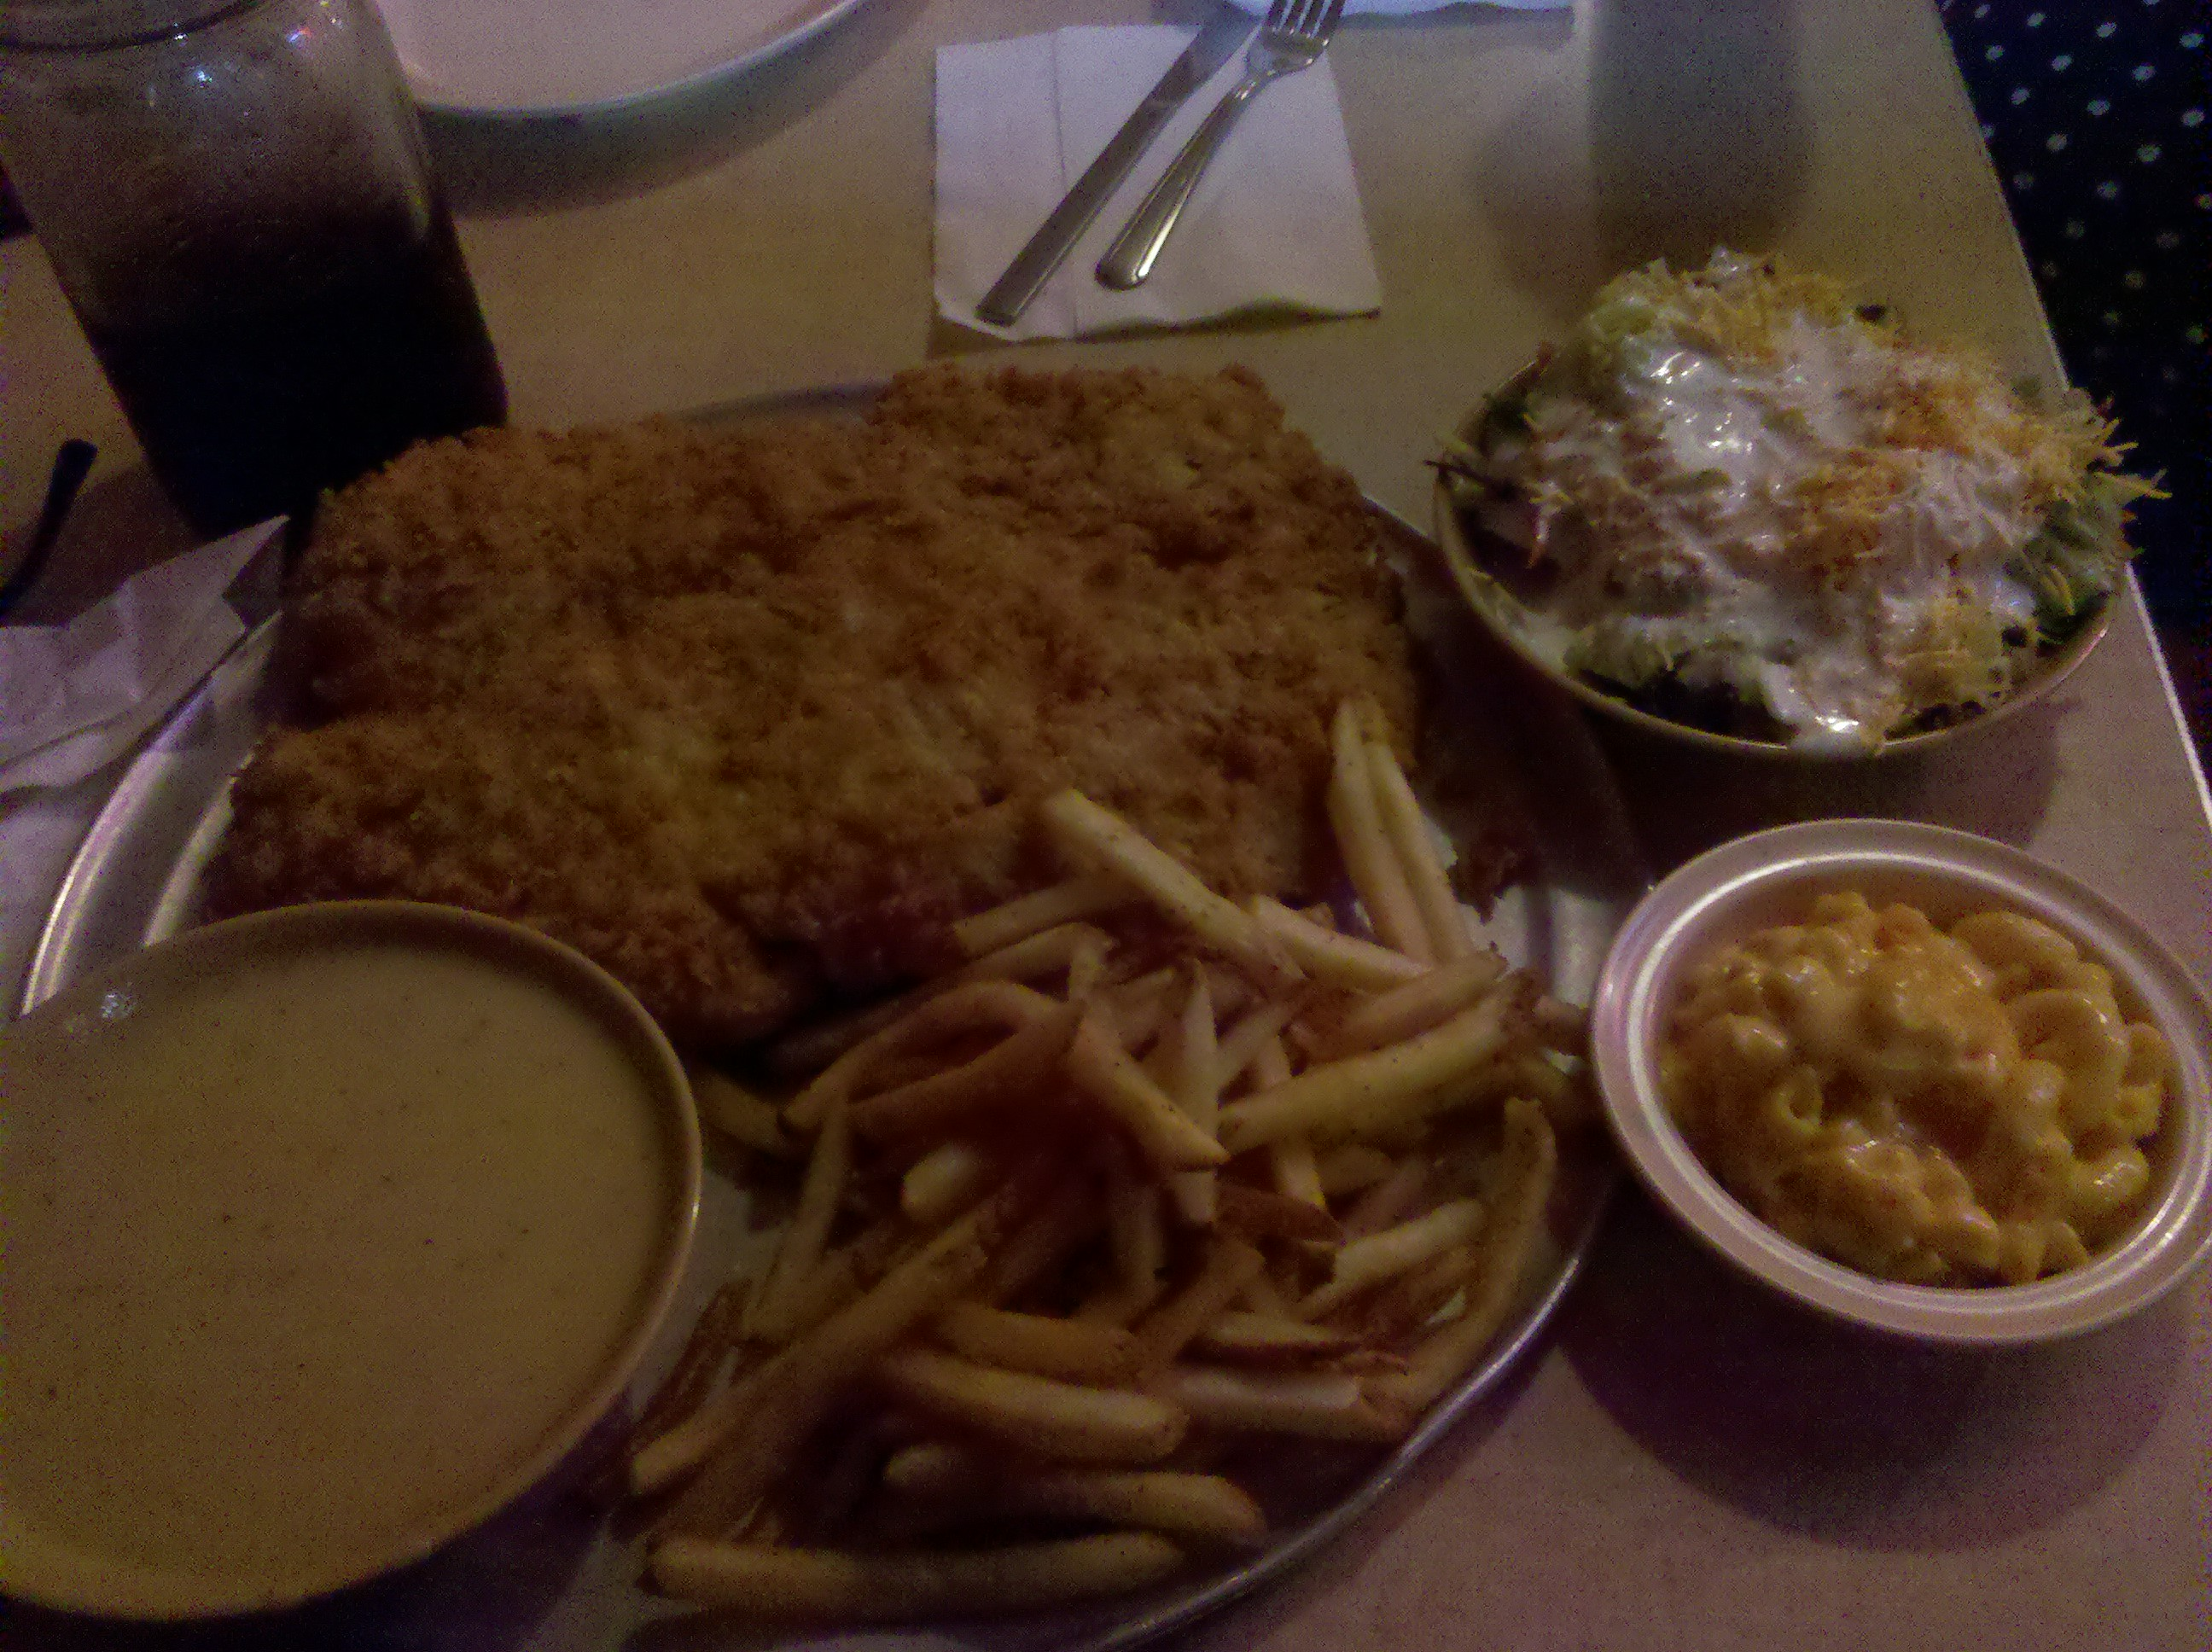 Hickory Hollow. TEXAS :: Everything's bigger in Texas, including this Chicken Fried Steak. So big it's served on a pizza tray. Fries and the MacNCheese was Tha Shhizzzz